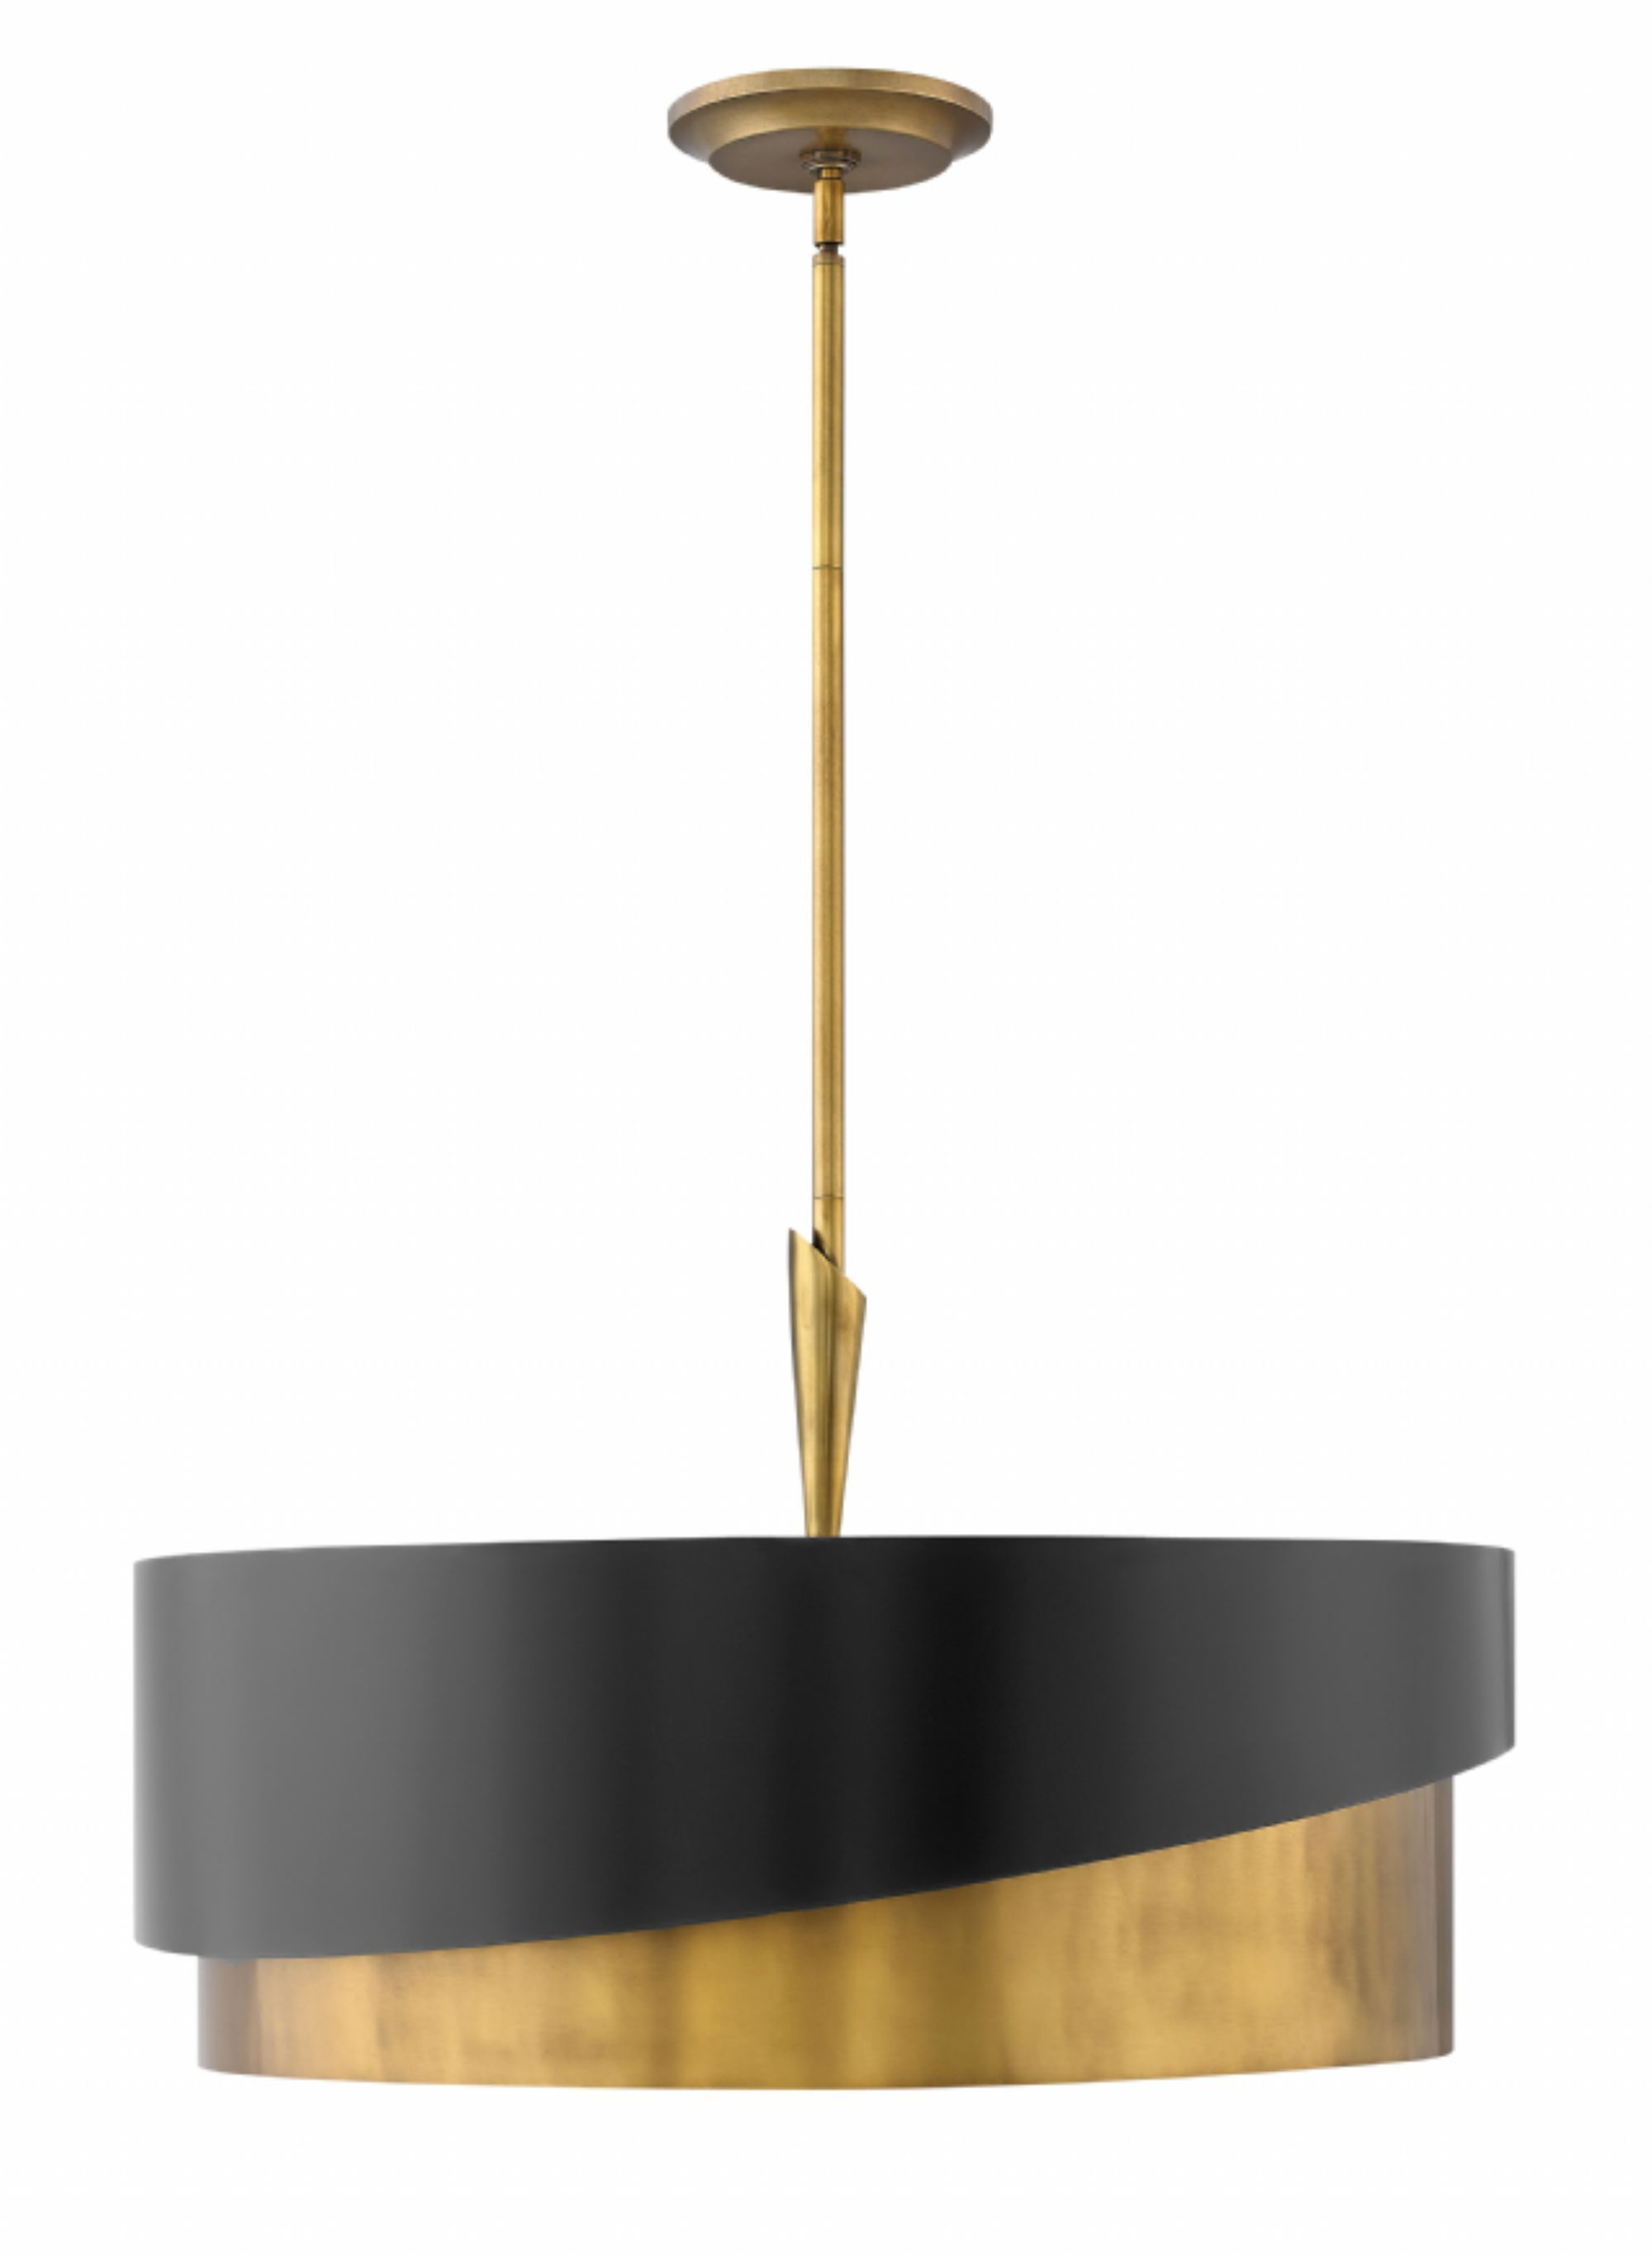 used pendant lighting. Hinkley Lighting Carries Many Heritage Brass Gigi Interior Hanging Light Fixtures That Can Be Used To Enhance The Appearance And Of Any Home. Pendant W